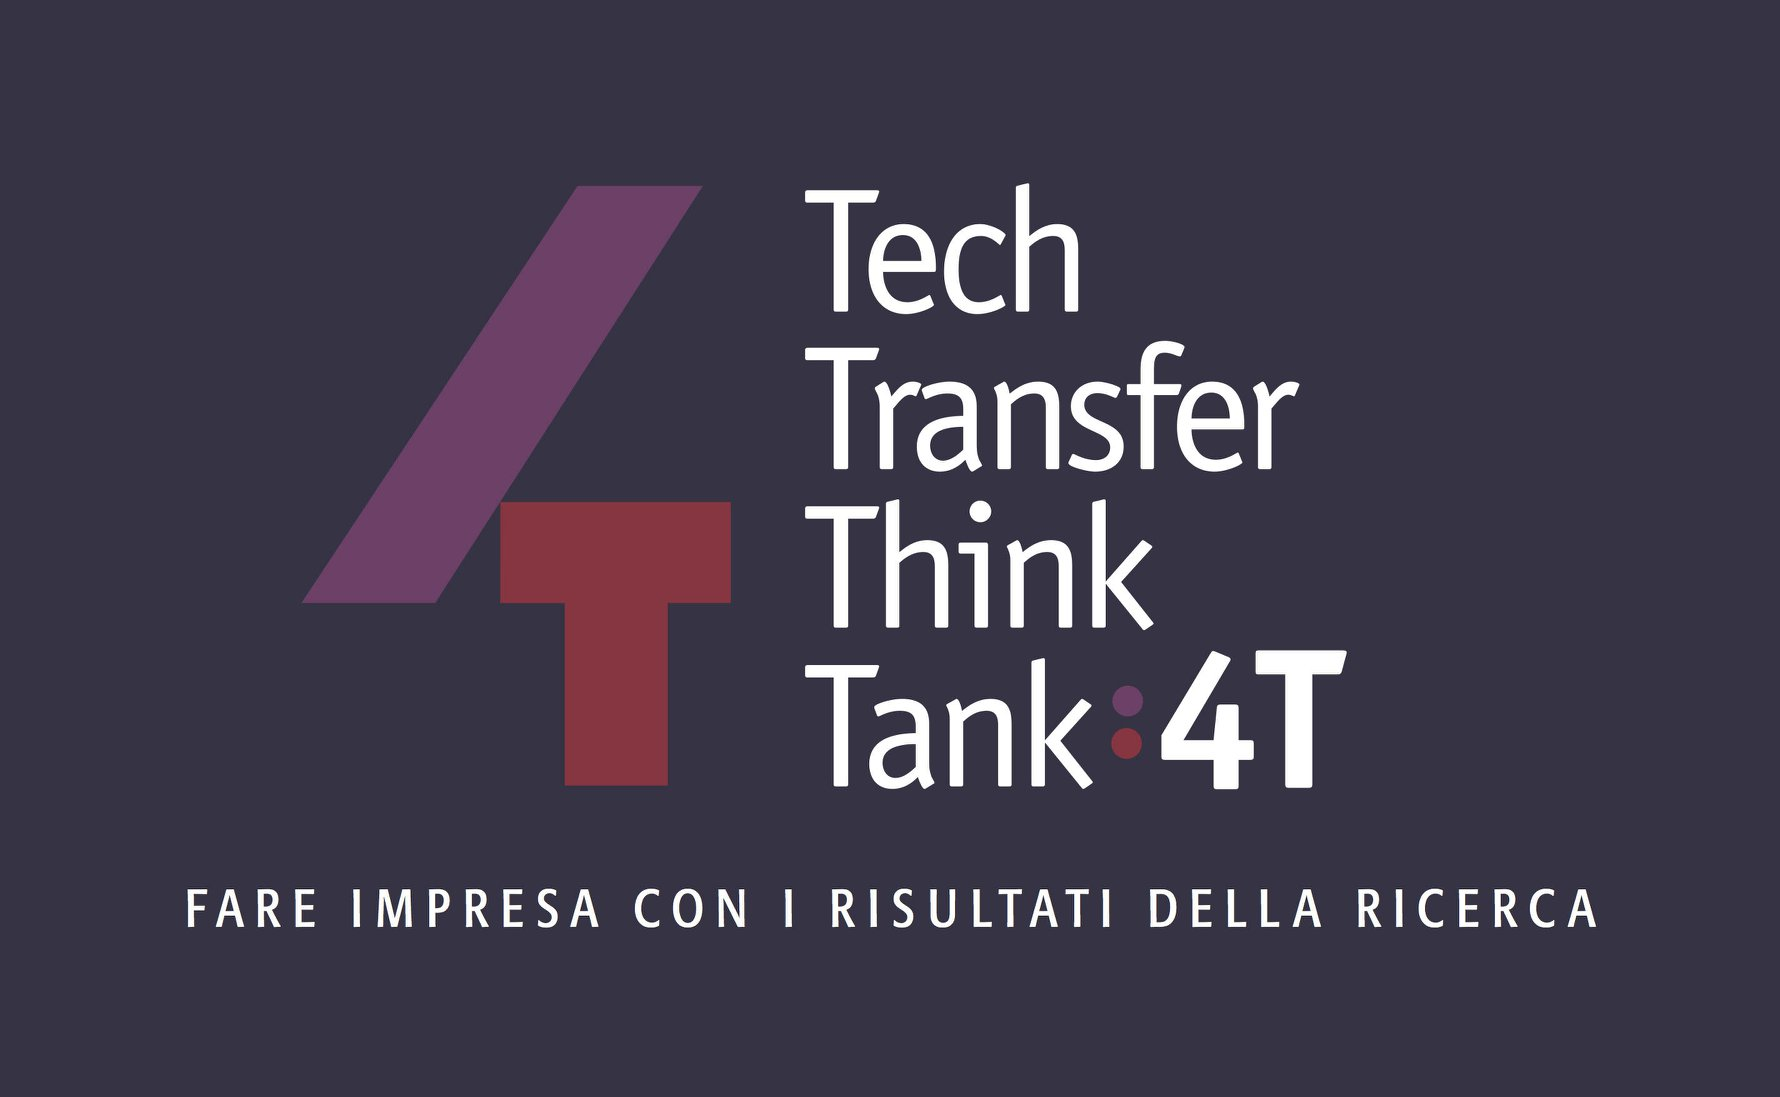 4TechTransfer